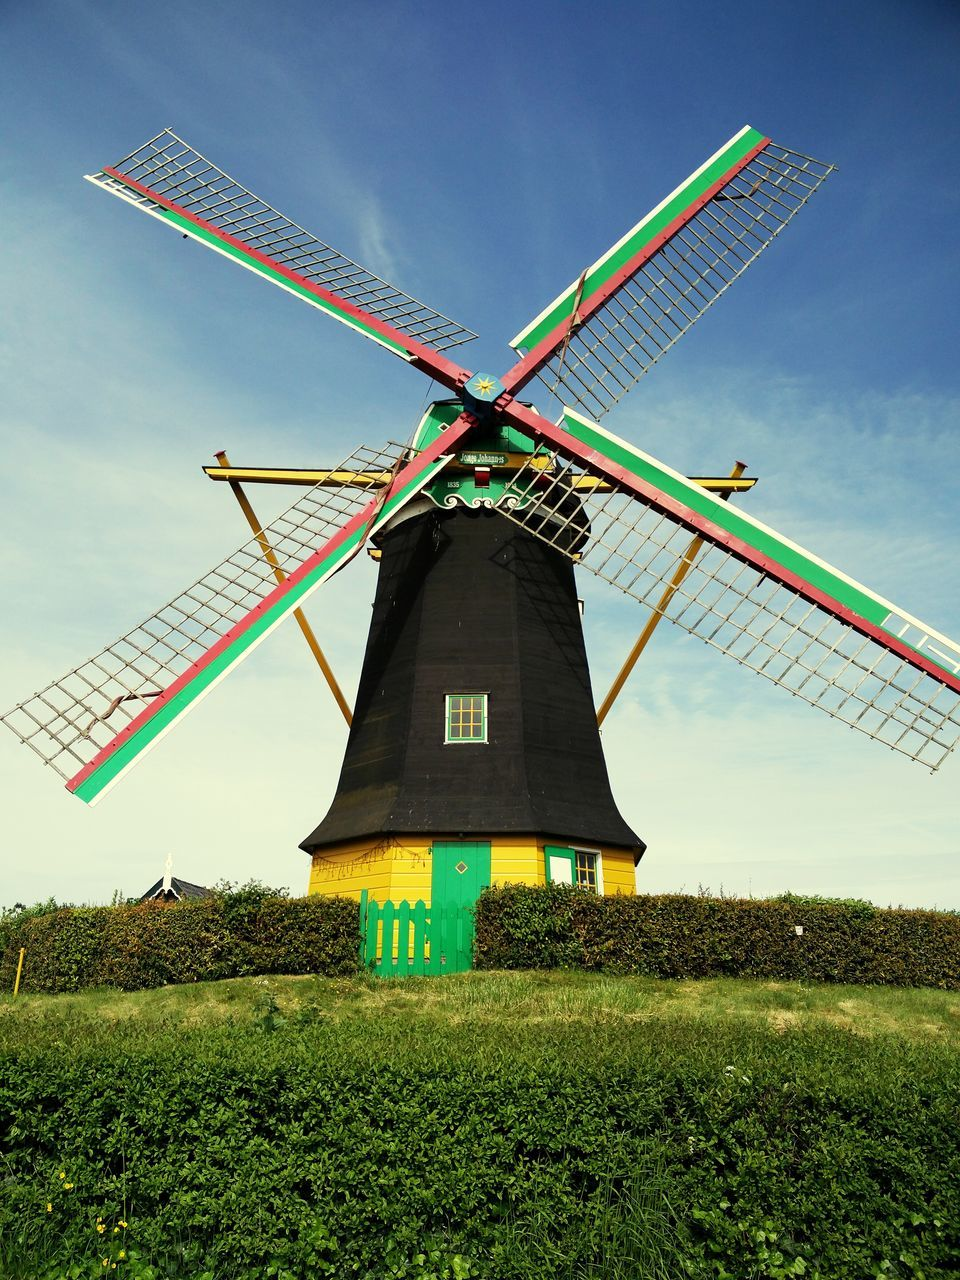 alternative energy, wind power, renewable energy, environmental conservation, wind turbine, windmill, fuel and power generation, field, traditional windmill, industrial windmill, day, rural scene, outdoors, no people, nature, sky, grass, sustainable resources, built structure, low angle view, landscape, tree, architecture, beauty in nature